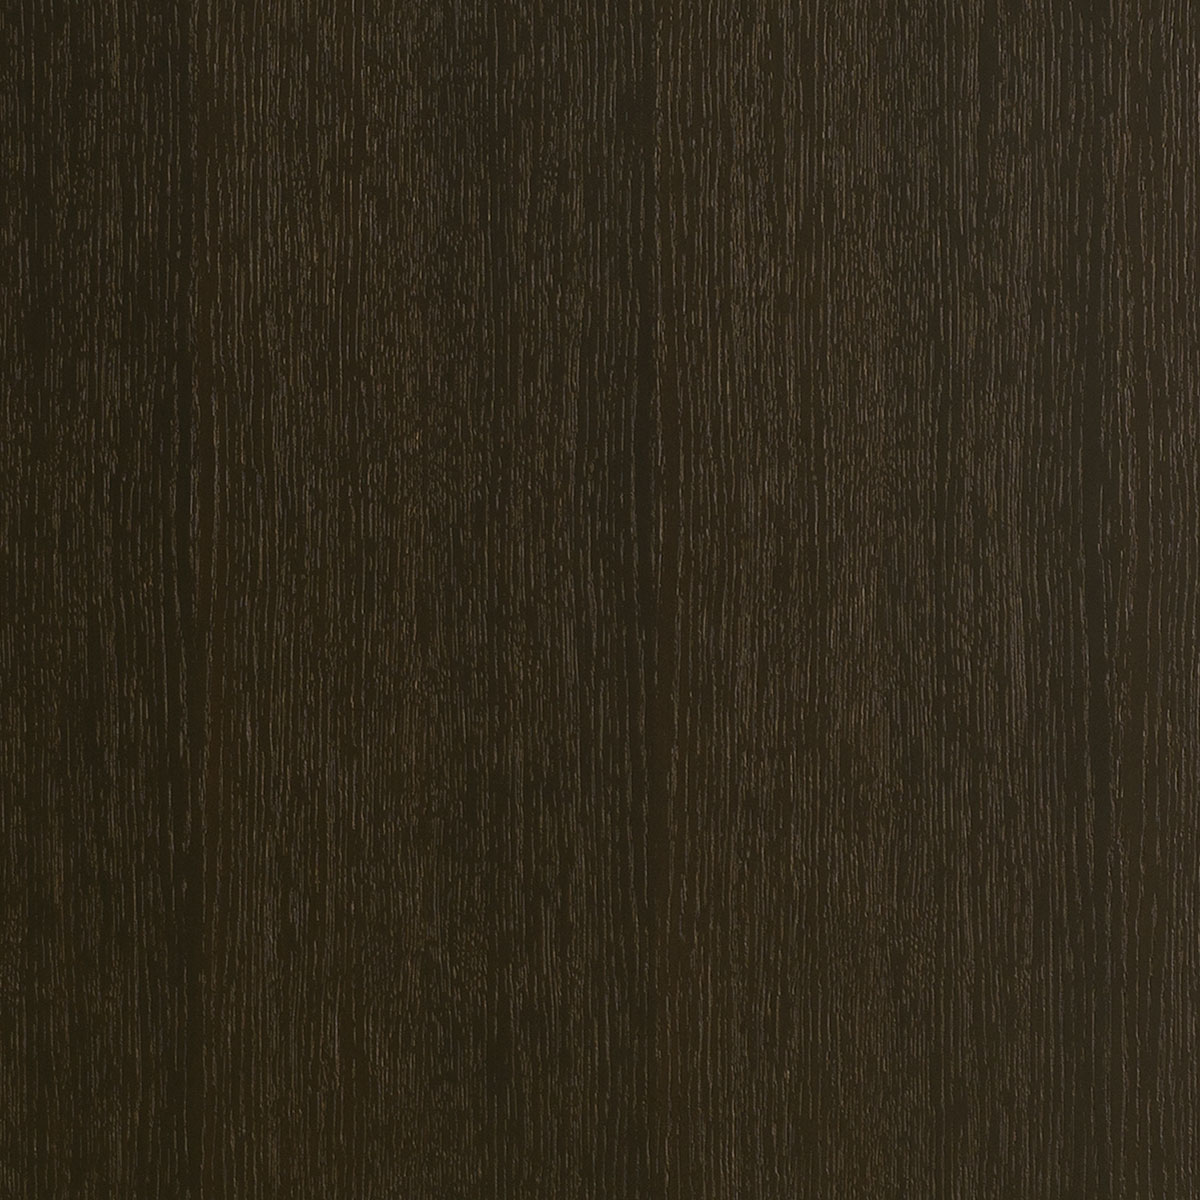 Rift-Cut Oak Wood with Coffee Bean Finish